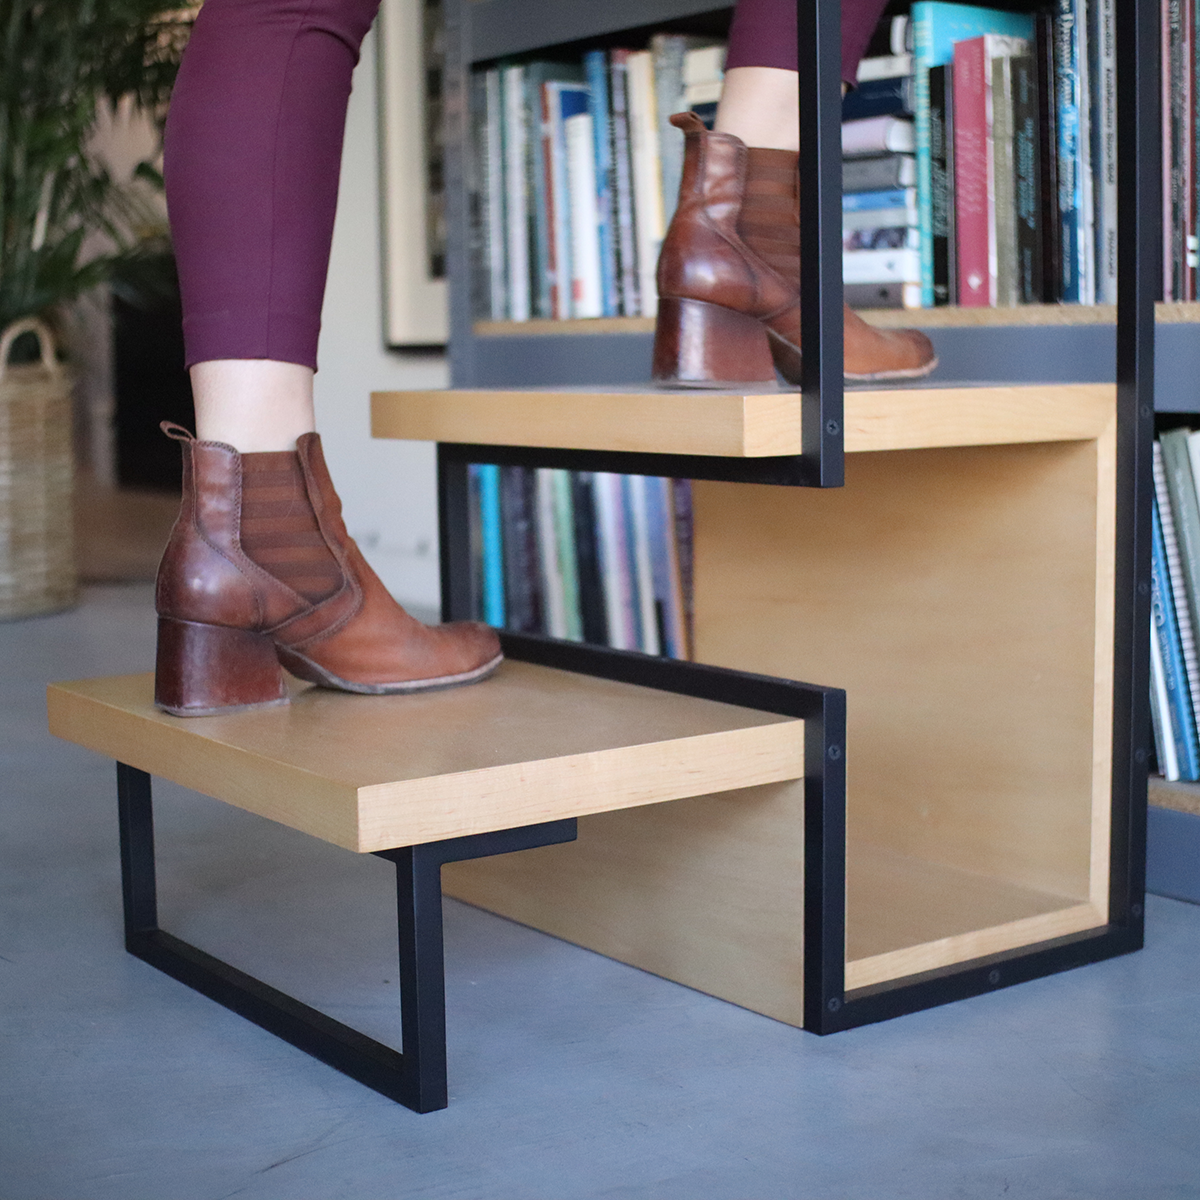 Stepladder Photos 2-Small.png